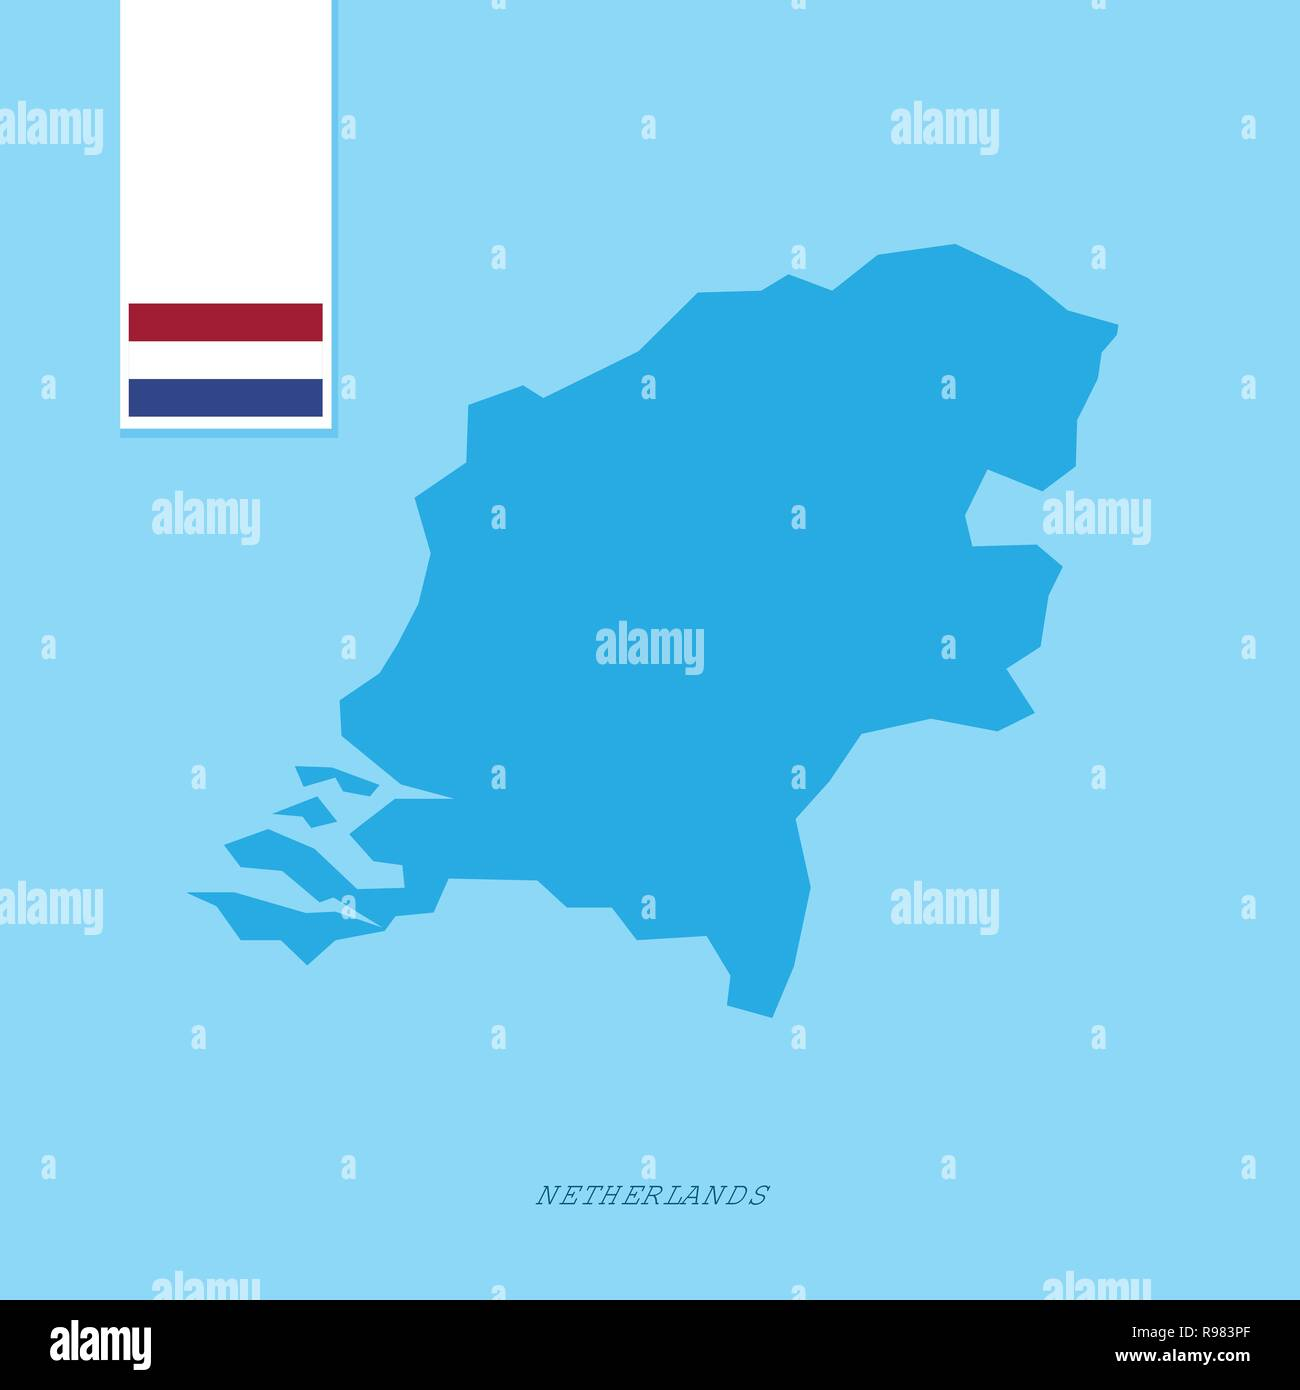 Netherlands Country Map with Flag over Blue background - Stock Vector